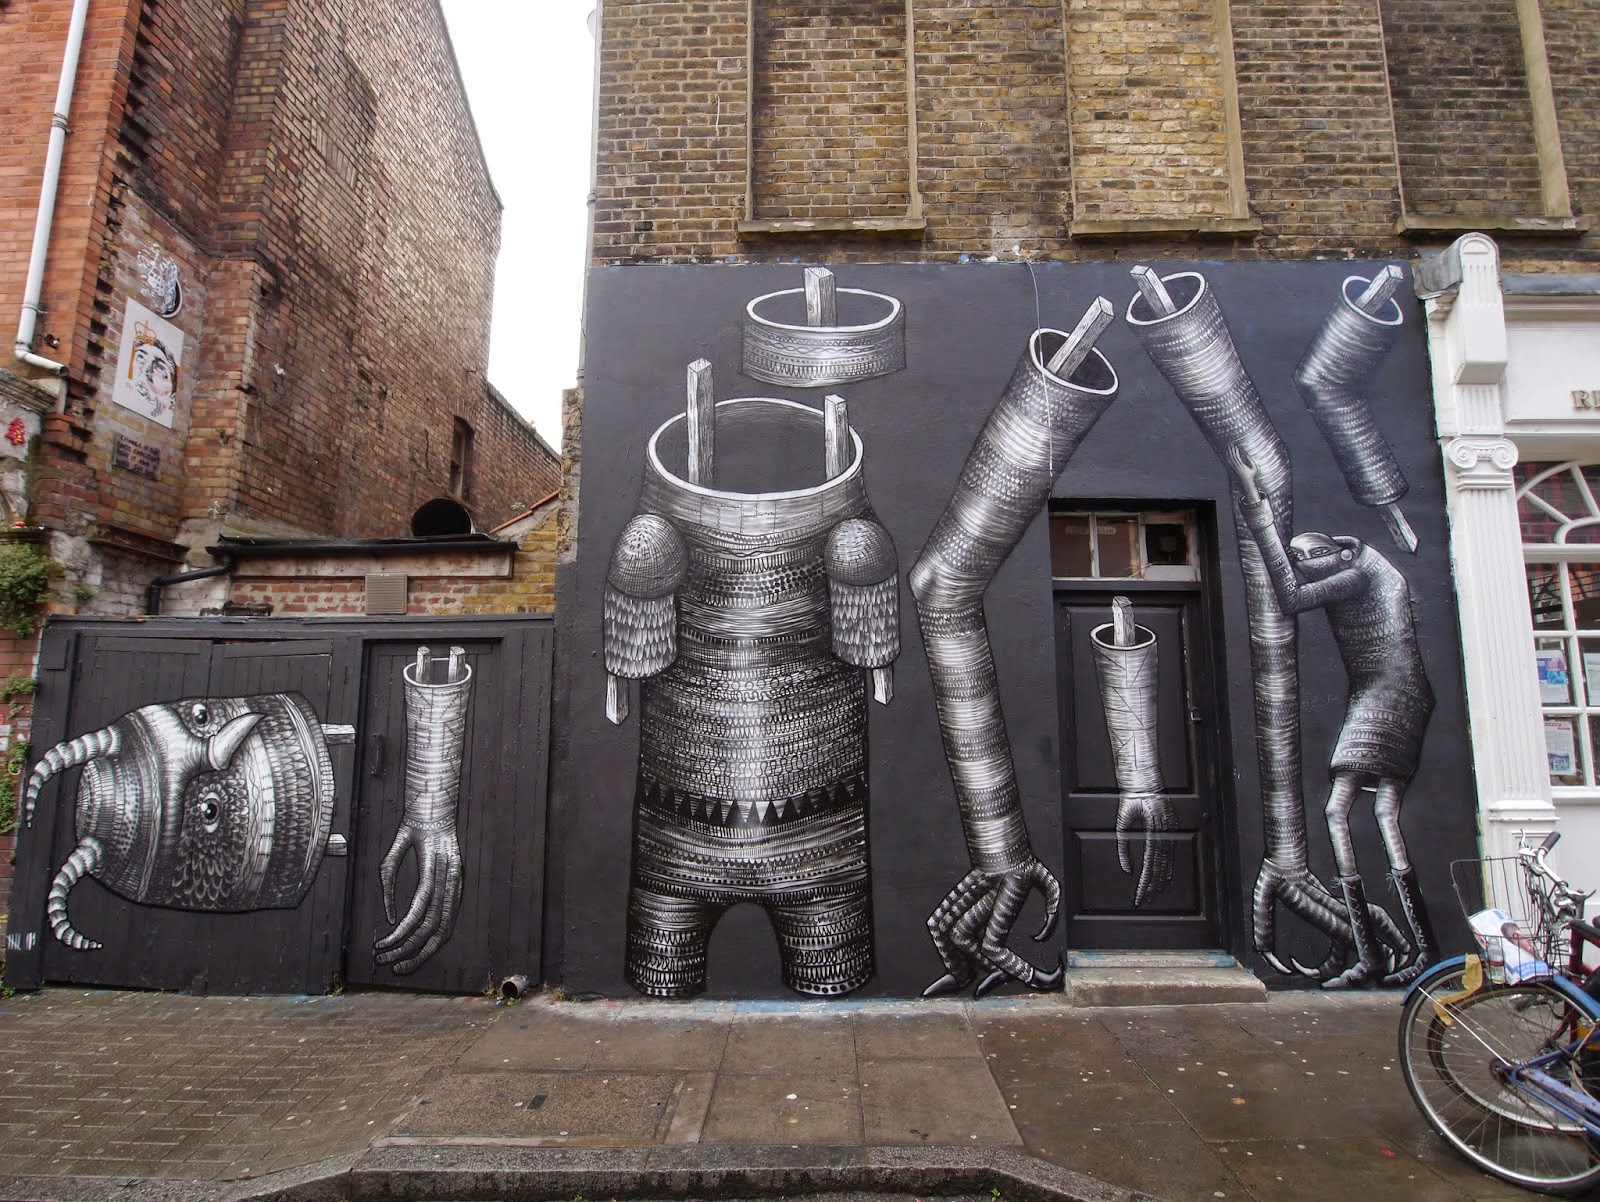 While we last heard from him with David De La Mano in Wales a few days ago, Phlegm is now back in London where he just finished working on this new mural.